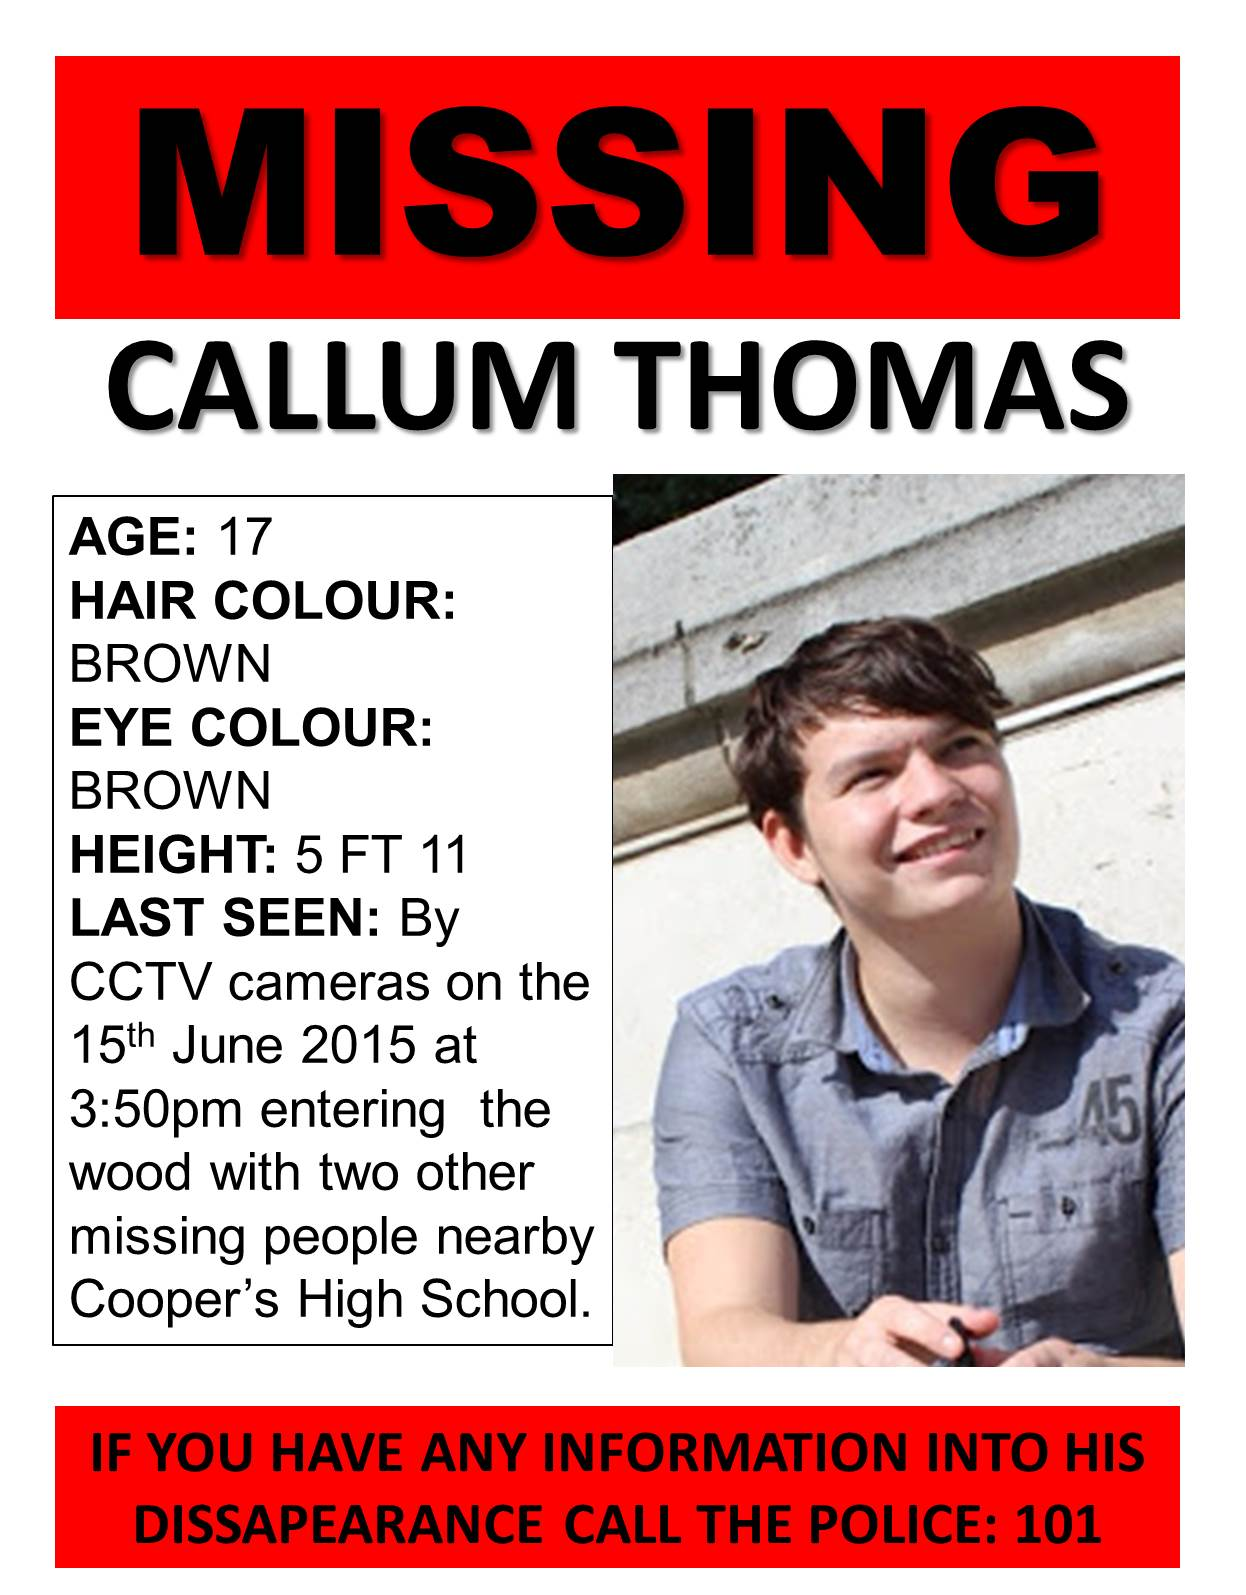 Lucy Day A2 Media Coursework Creating Missing Signs – Missing Person Poster Template